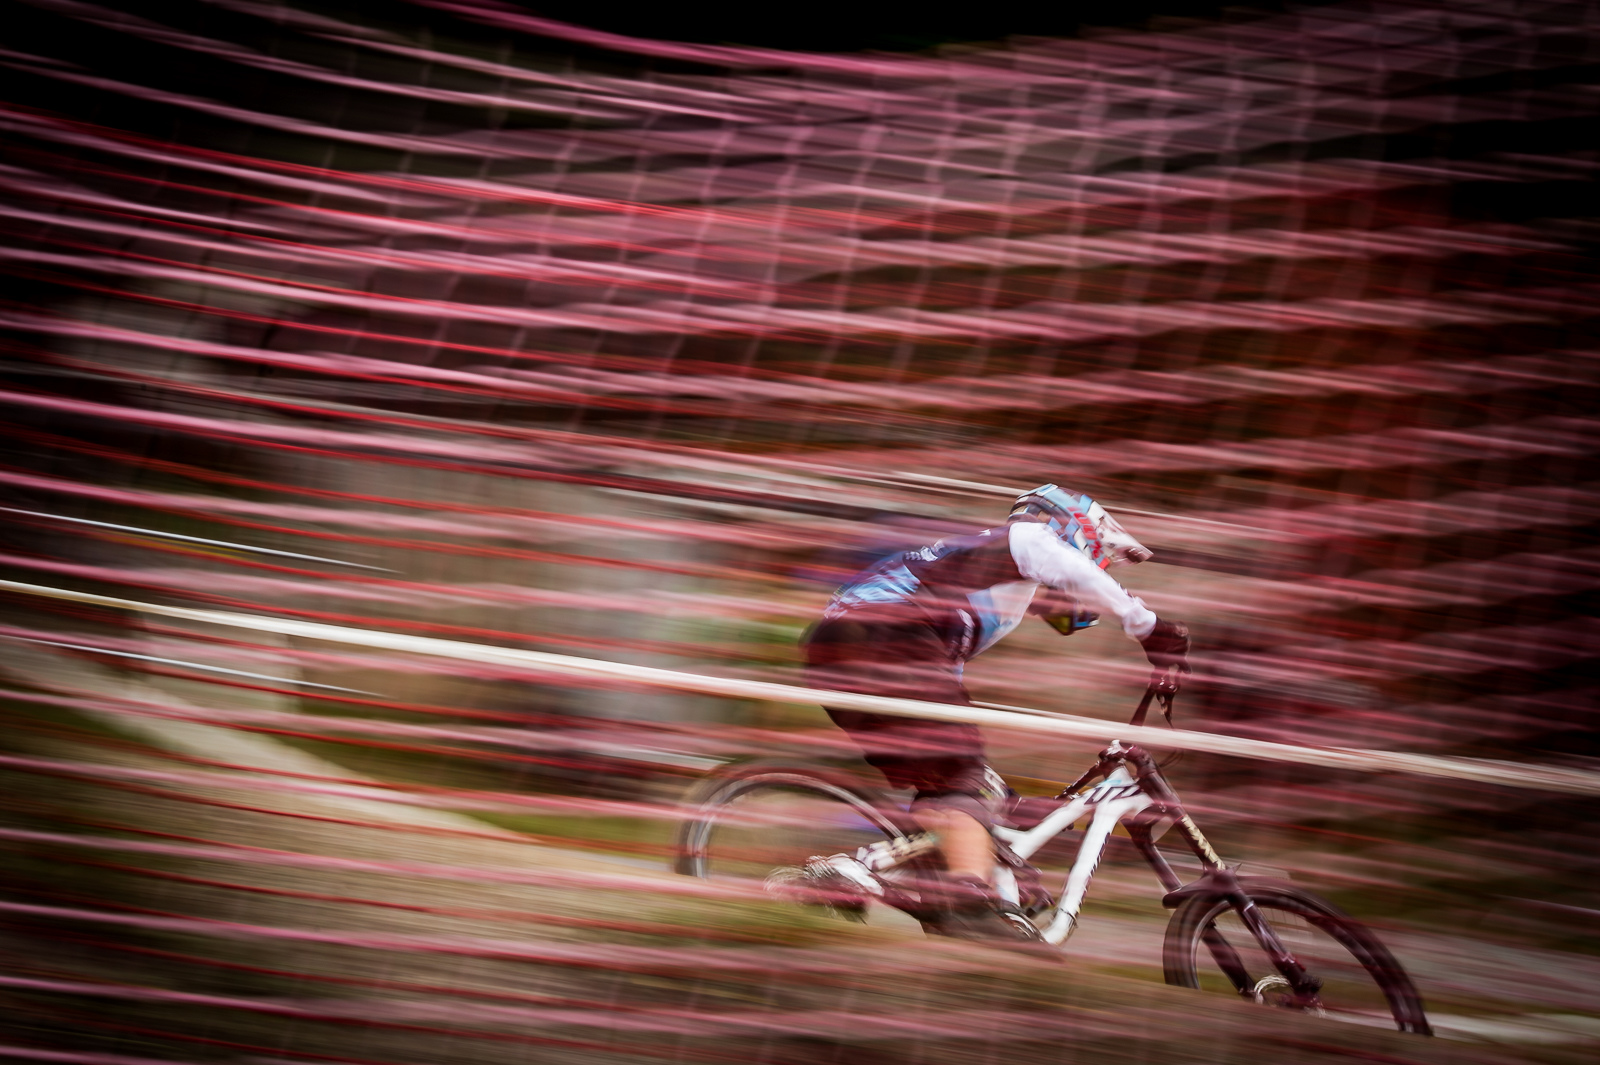 Moritz Ribarich scoring 7th spot for the Swiss DH Syndicate.